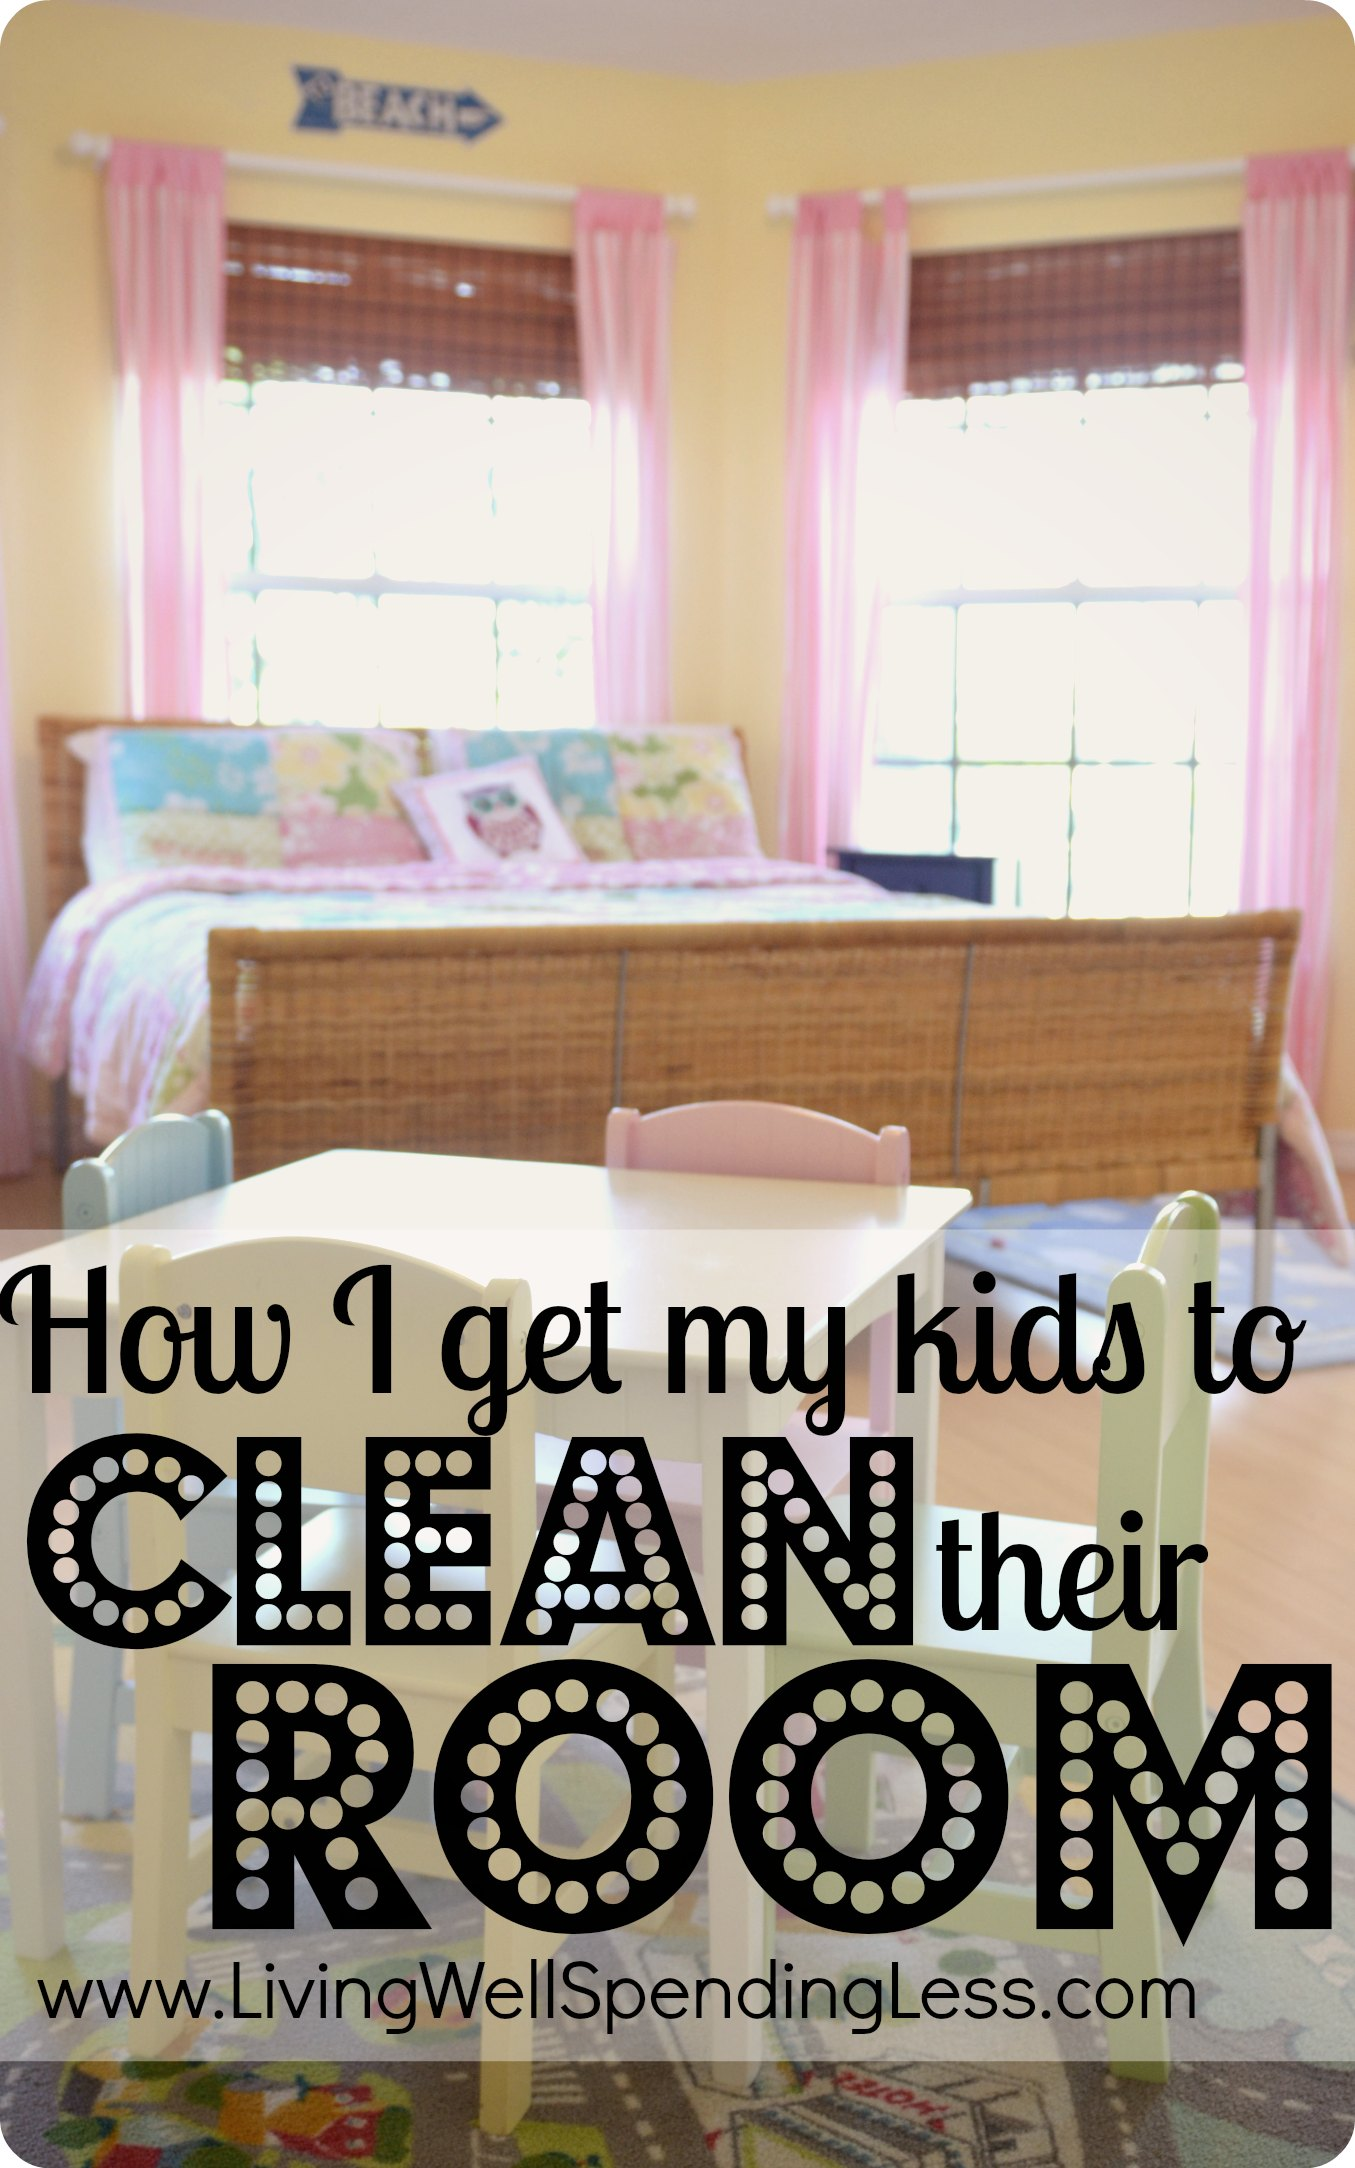 How I Get My Kids To Clean Their Room | Tips For Getting Kids To Clean